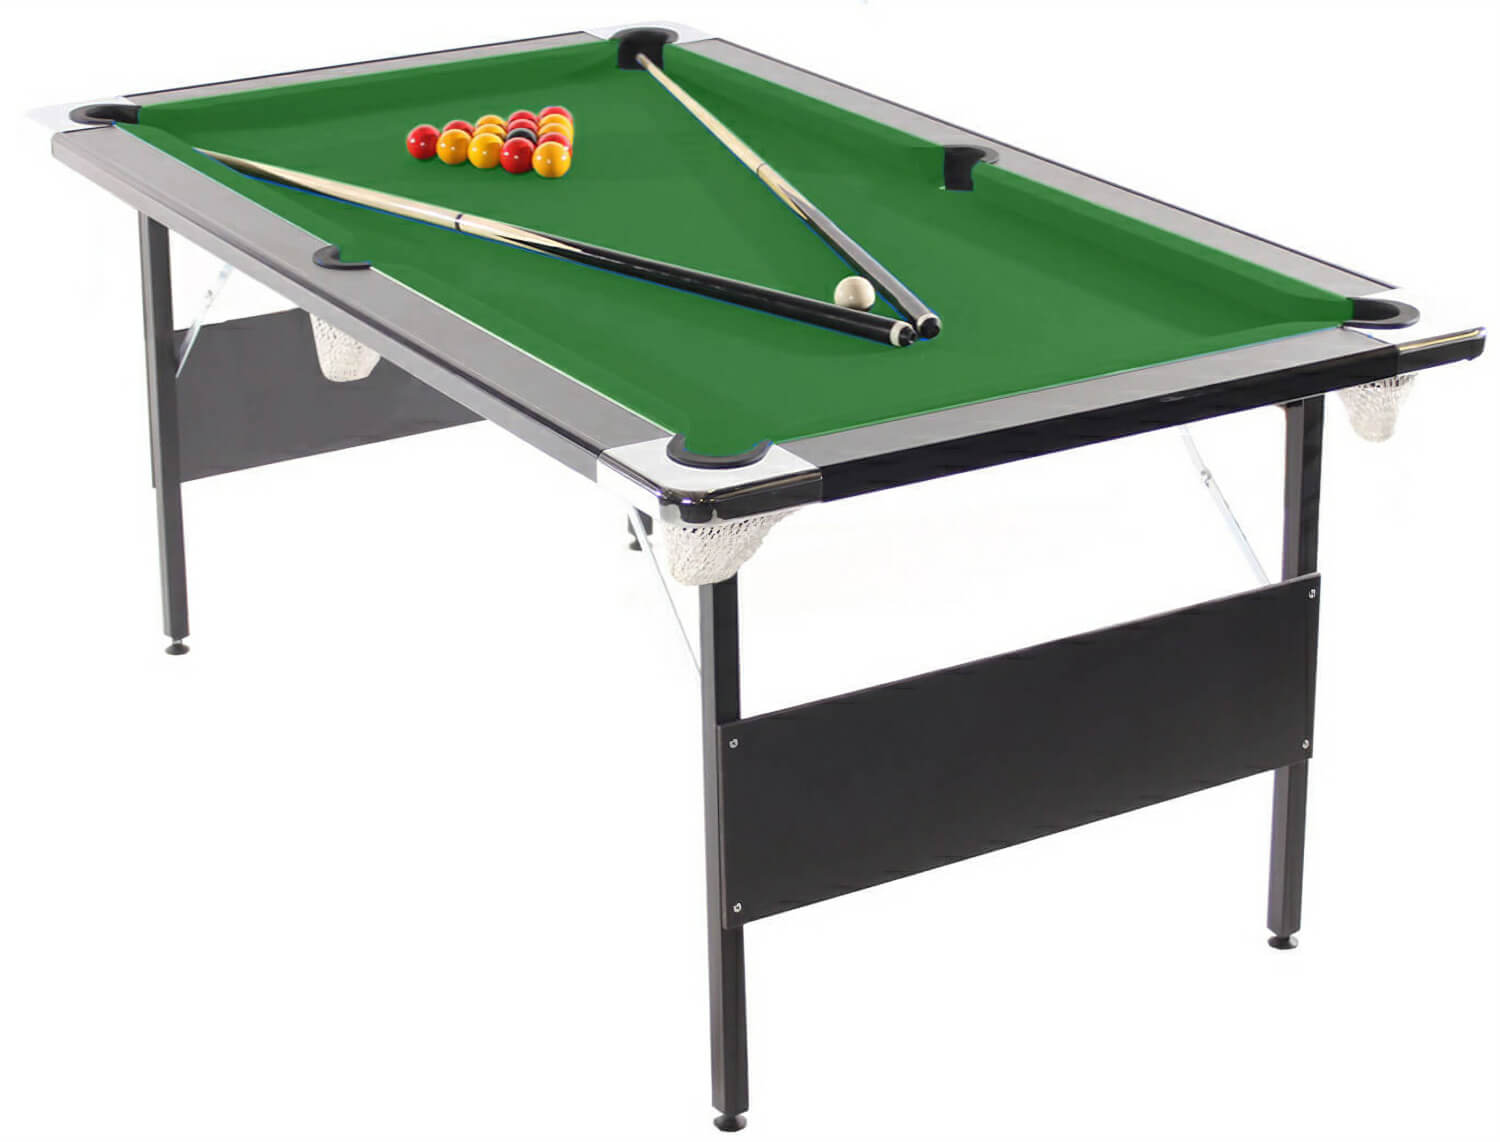 Foldaway pool table liberty games for 10 foot snooker table for sale